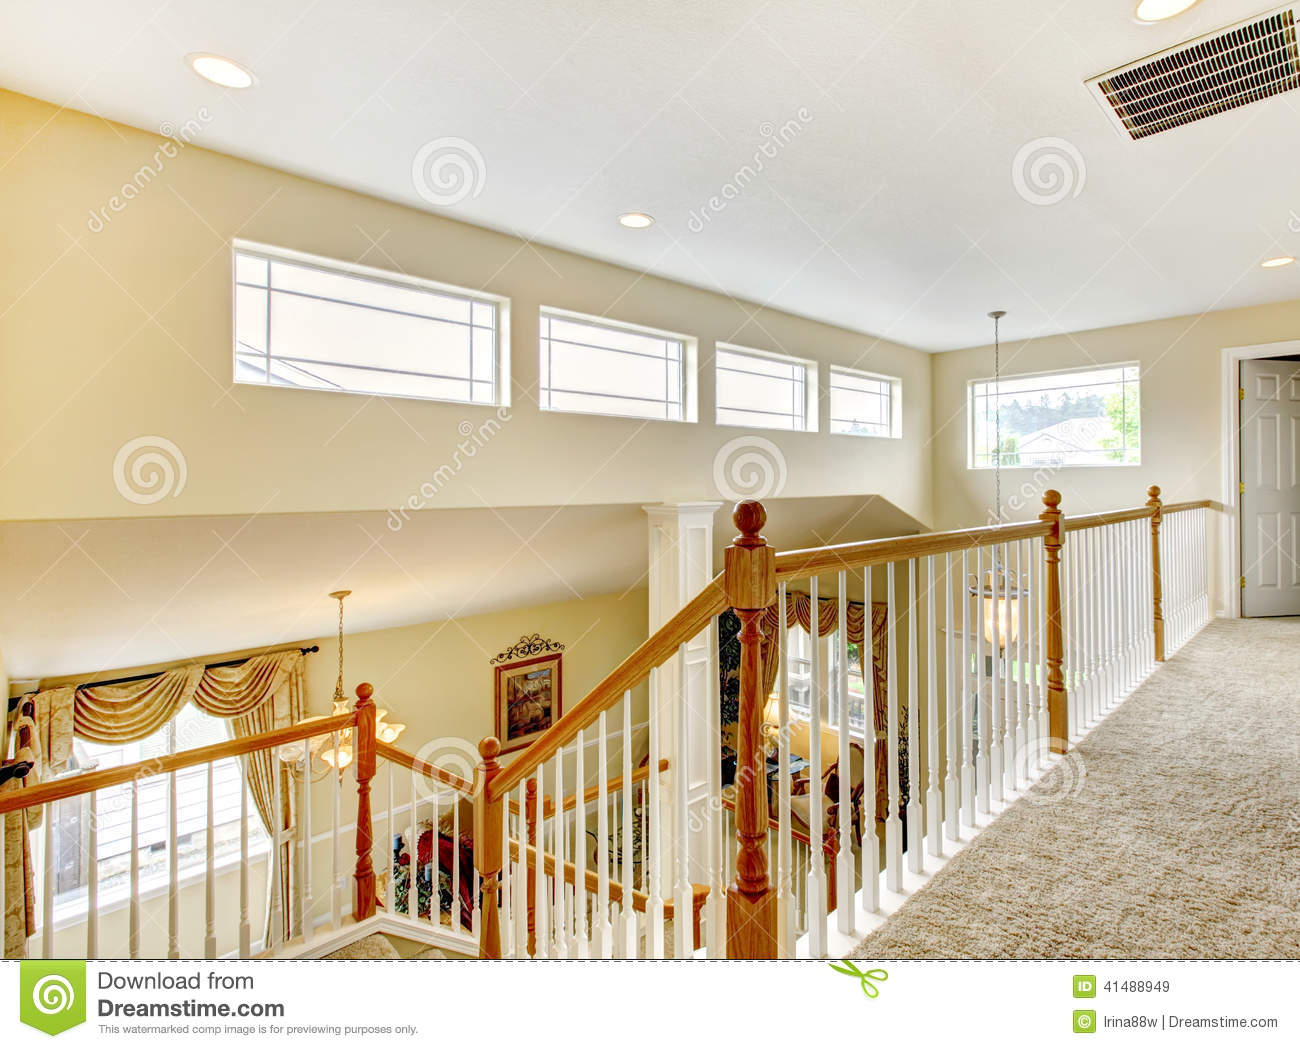 House inteior with indoor balcony stock image image of for Inside balcony